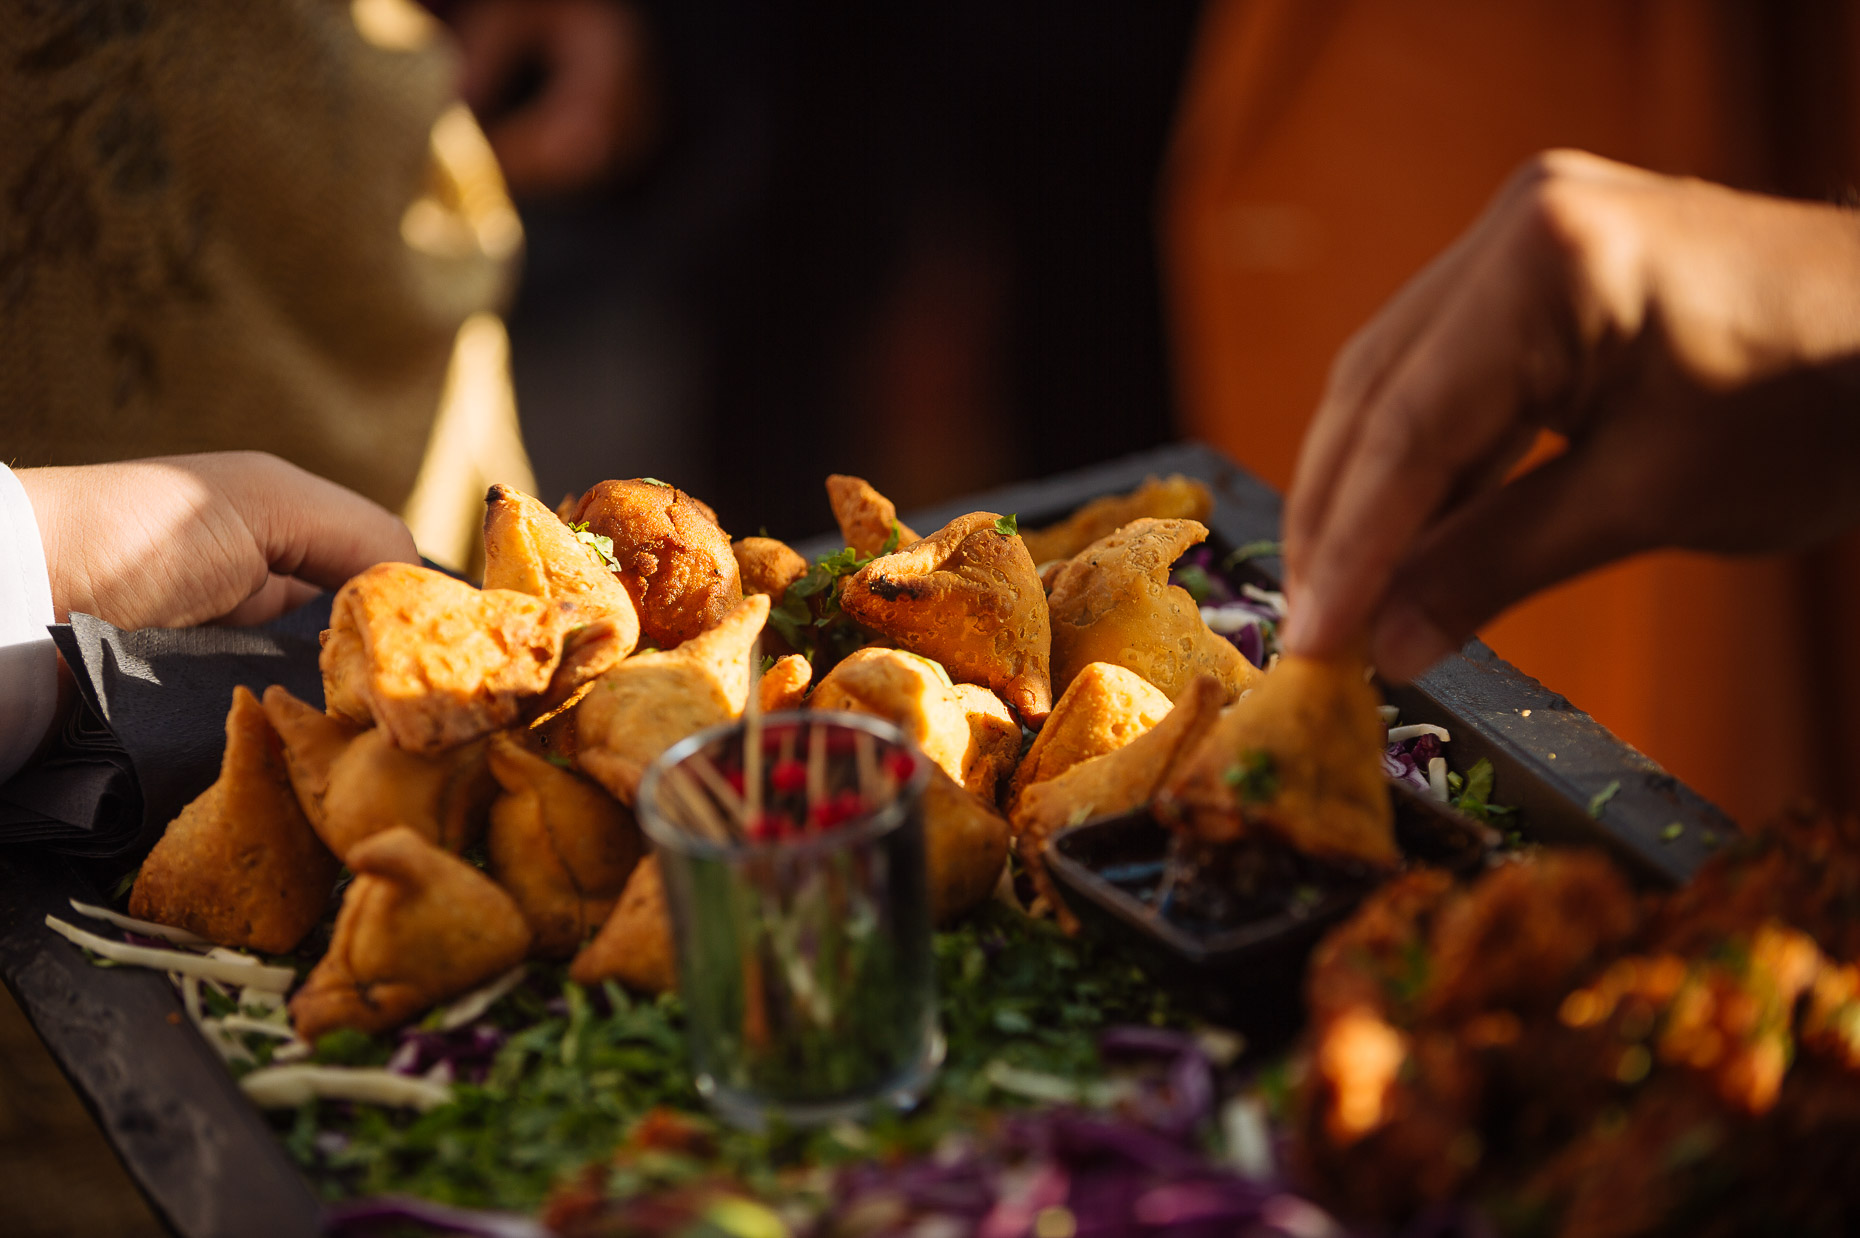 pooja-dan-v-and-a-museum-childhood-indian-food-samosa-asian-wedding-photography-16